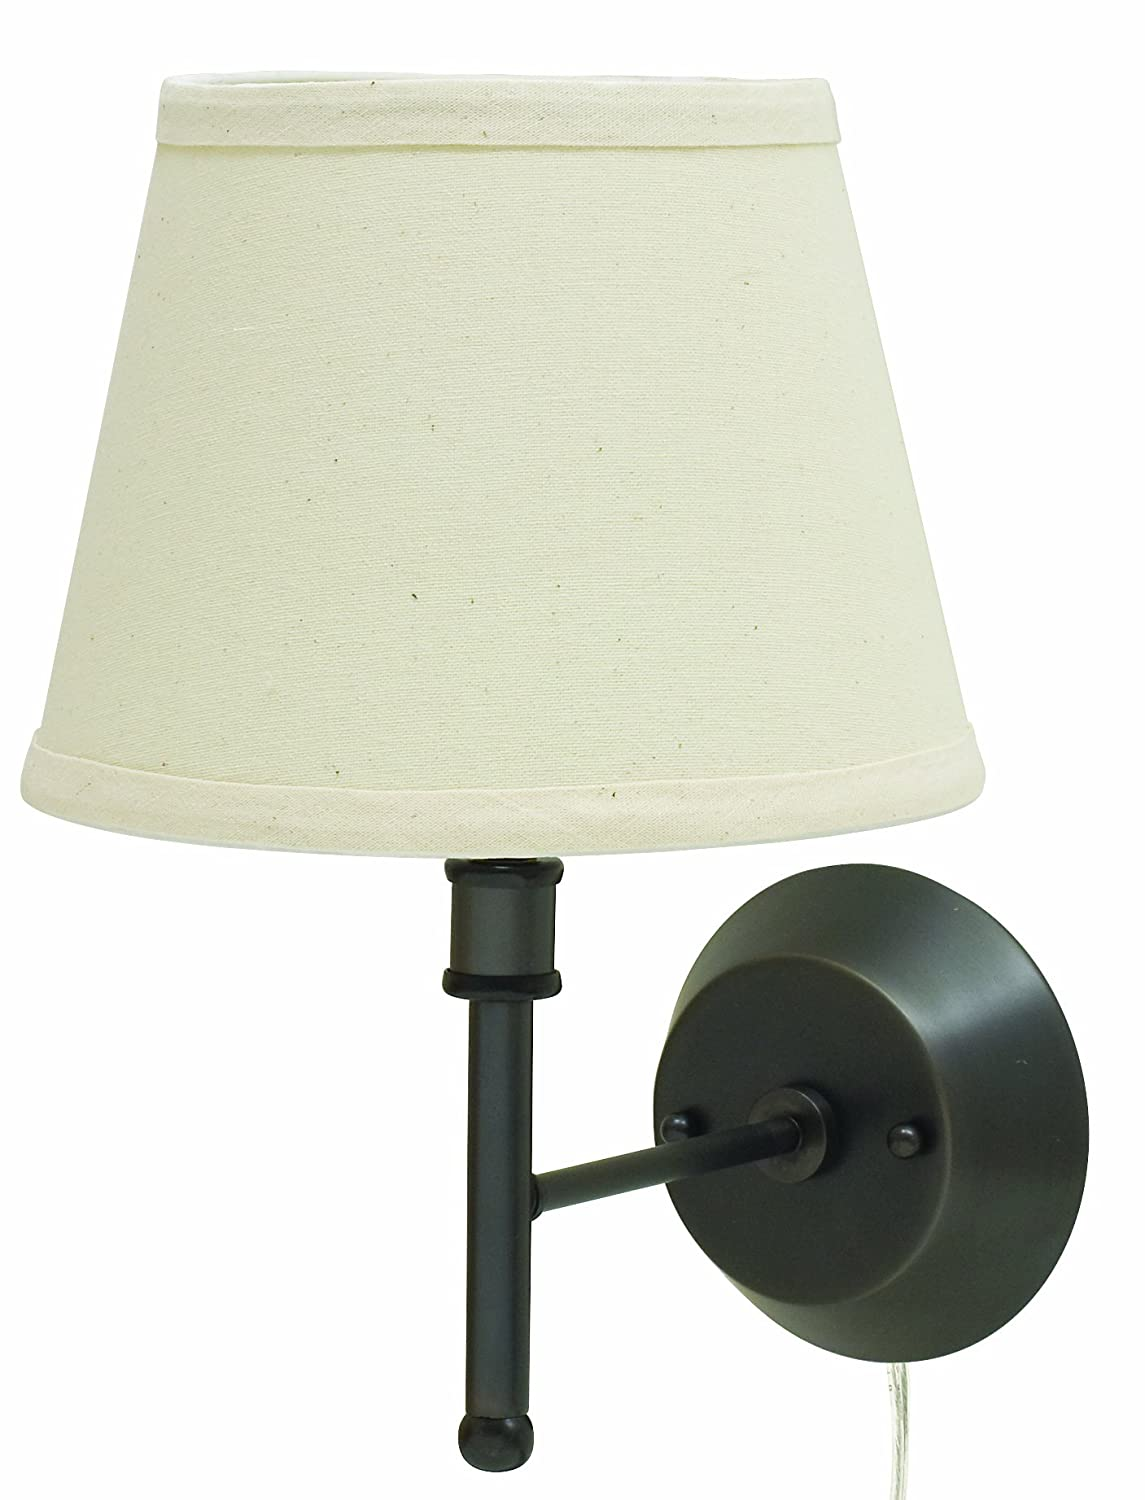 House of troy gr901 ab greensboro collection 13 inch portable wall house of troy gr901 ab greensboro collection 13 inch portable wall lamp antique brass wall porch lights amazon aloadofball Image collections